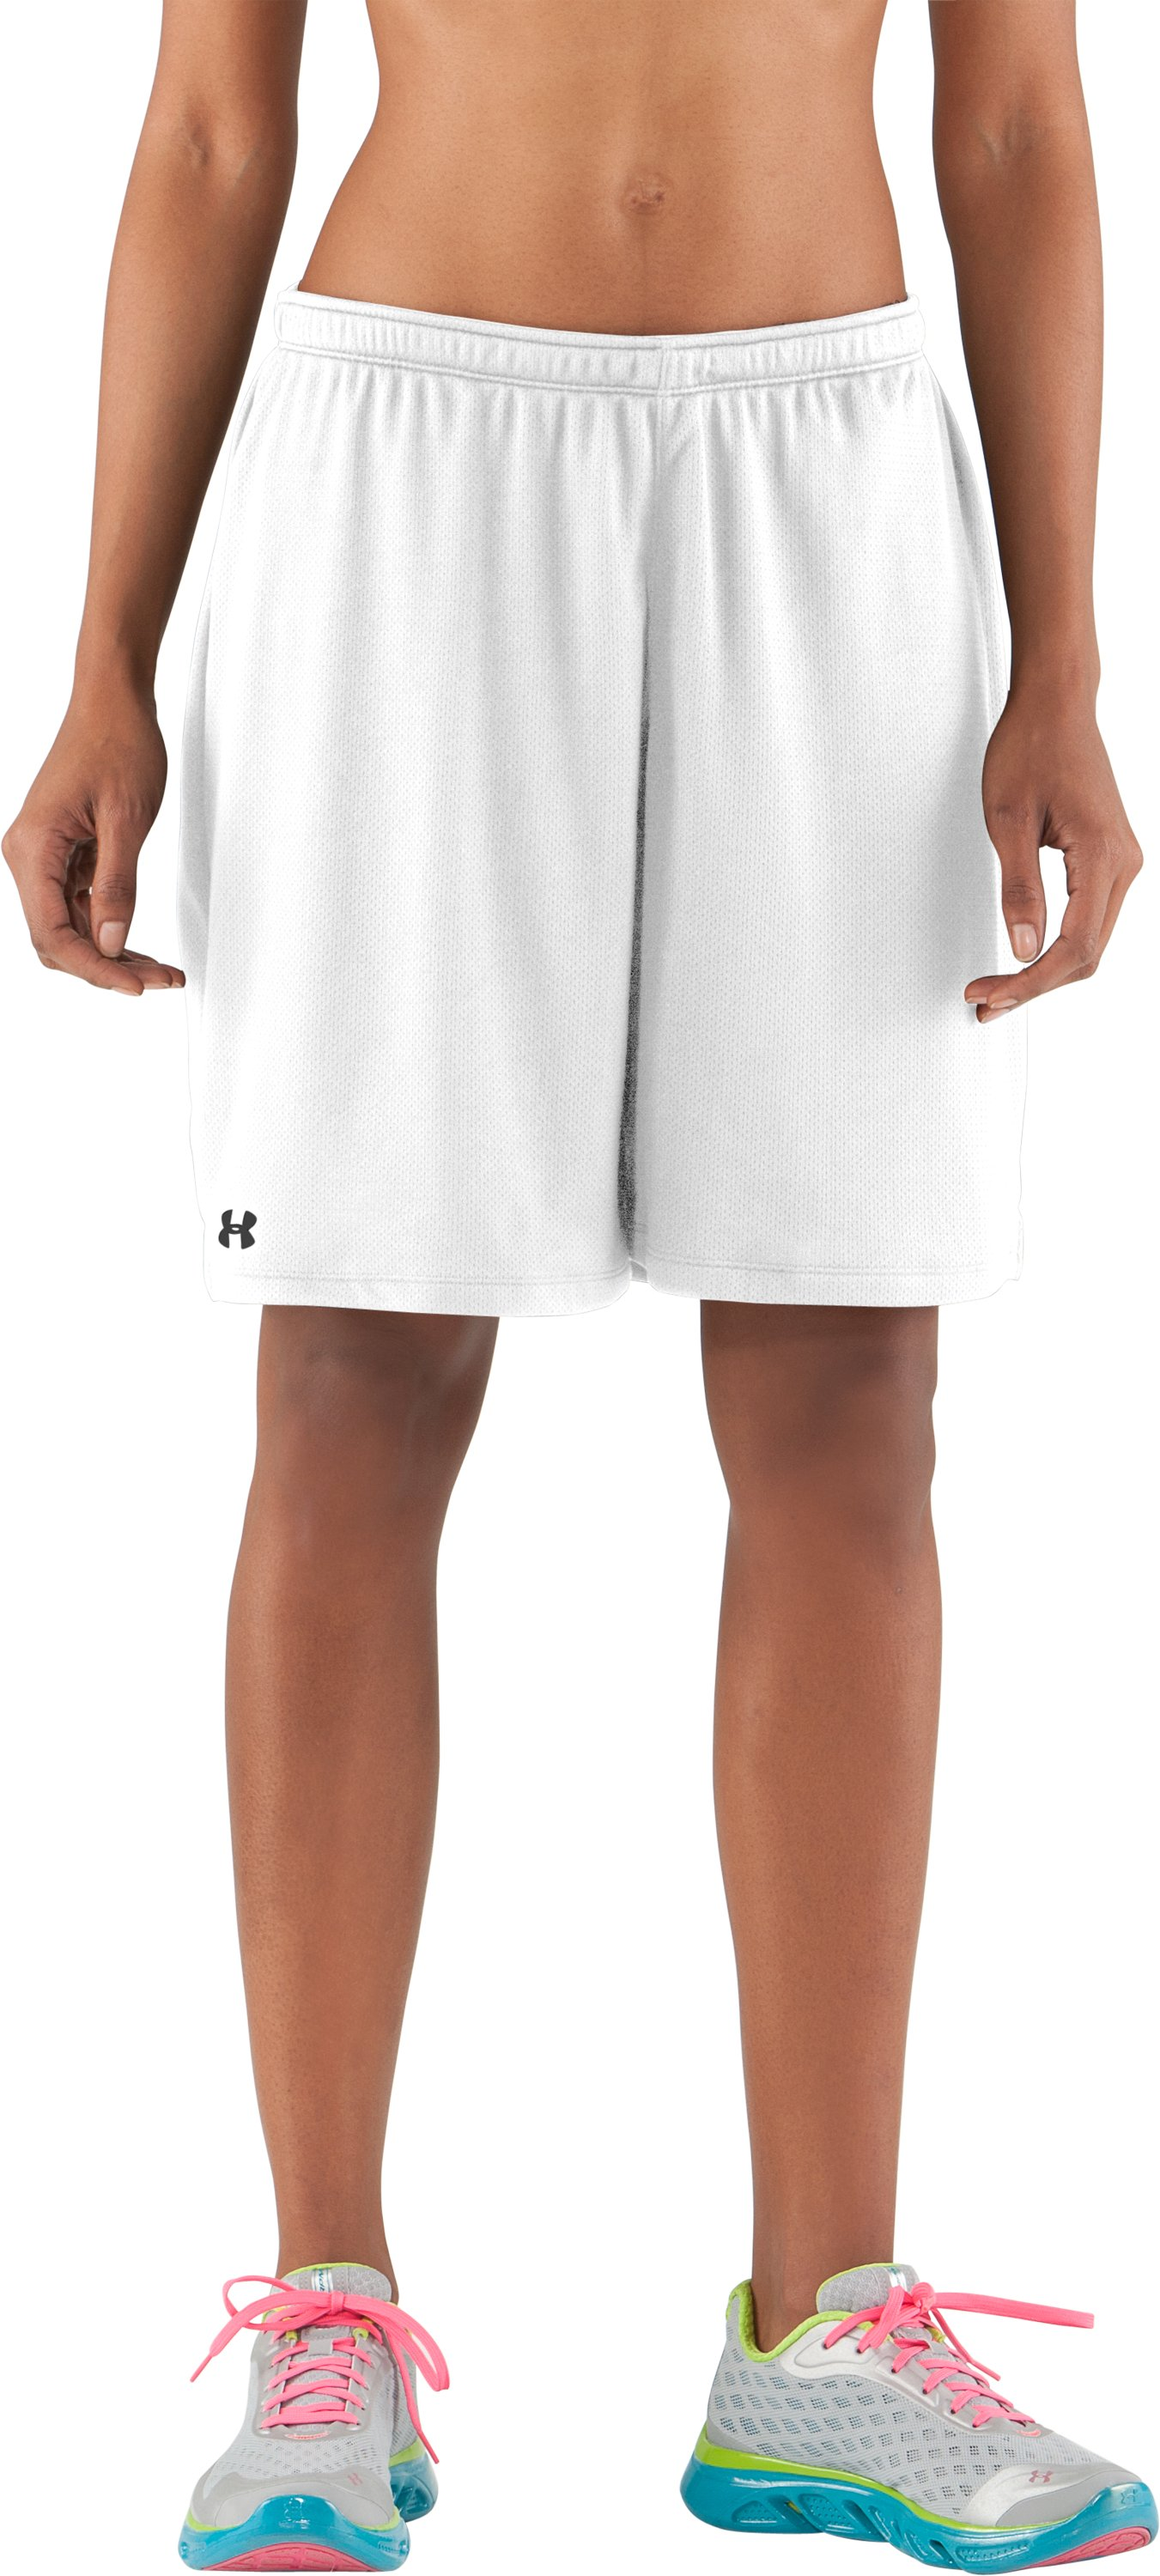 "Women's Dominate 8.5"" Short, White"